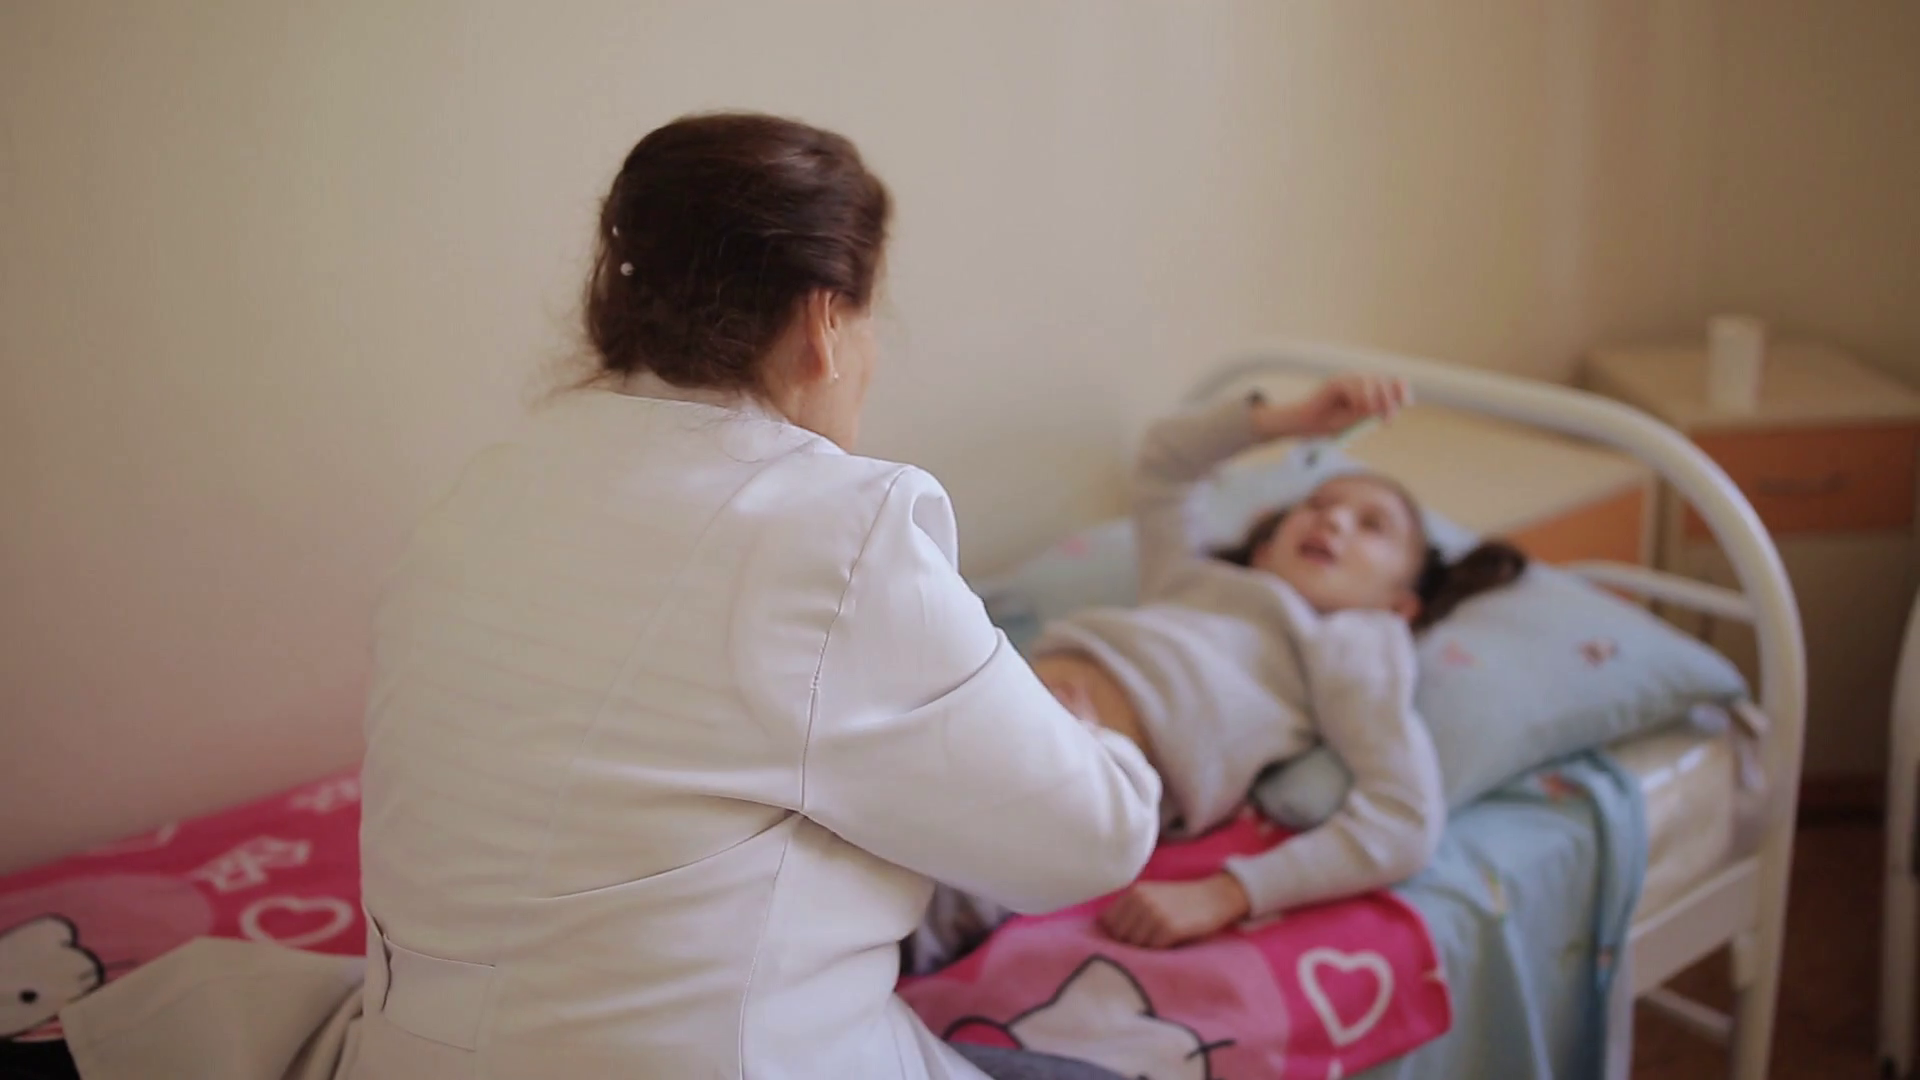 The elderly woman masseur doing massage of the abdomen to the little girl in the hospital. Stock Video Footage - Storyblocks